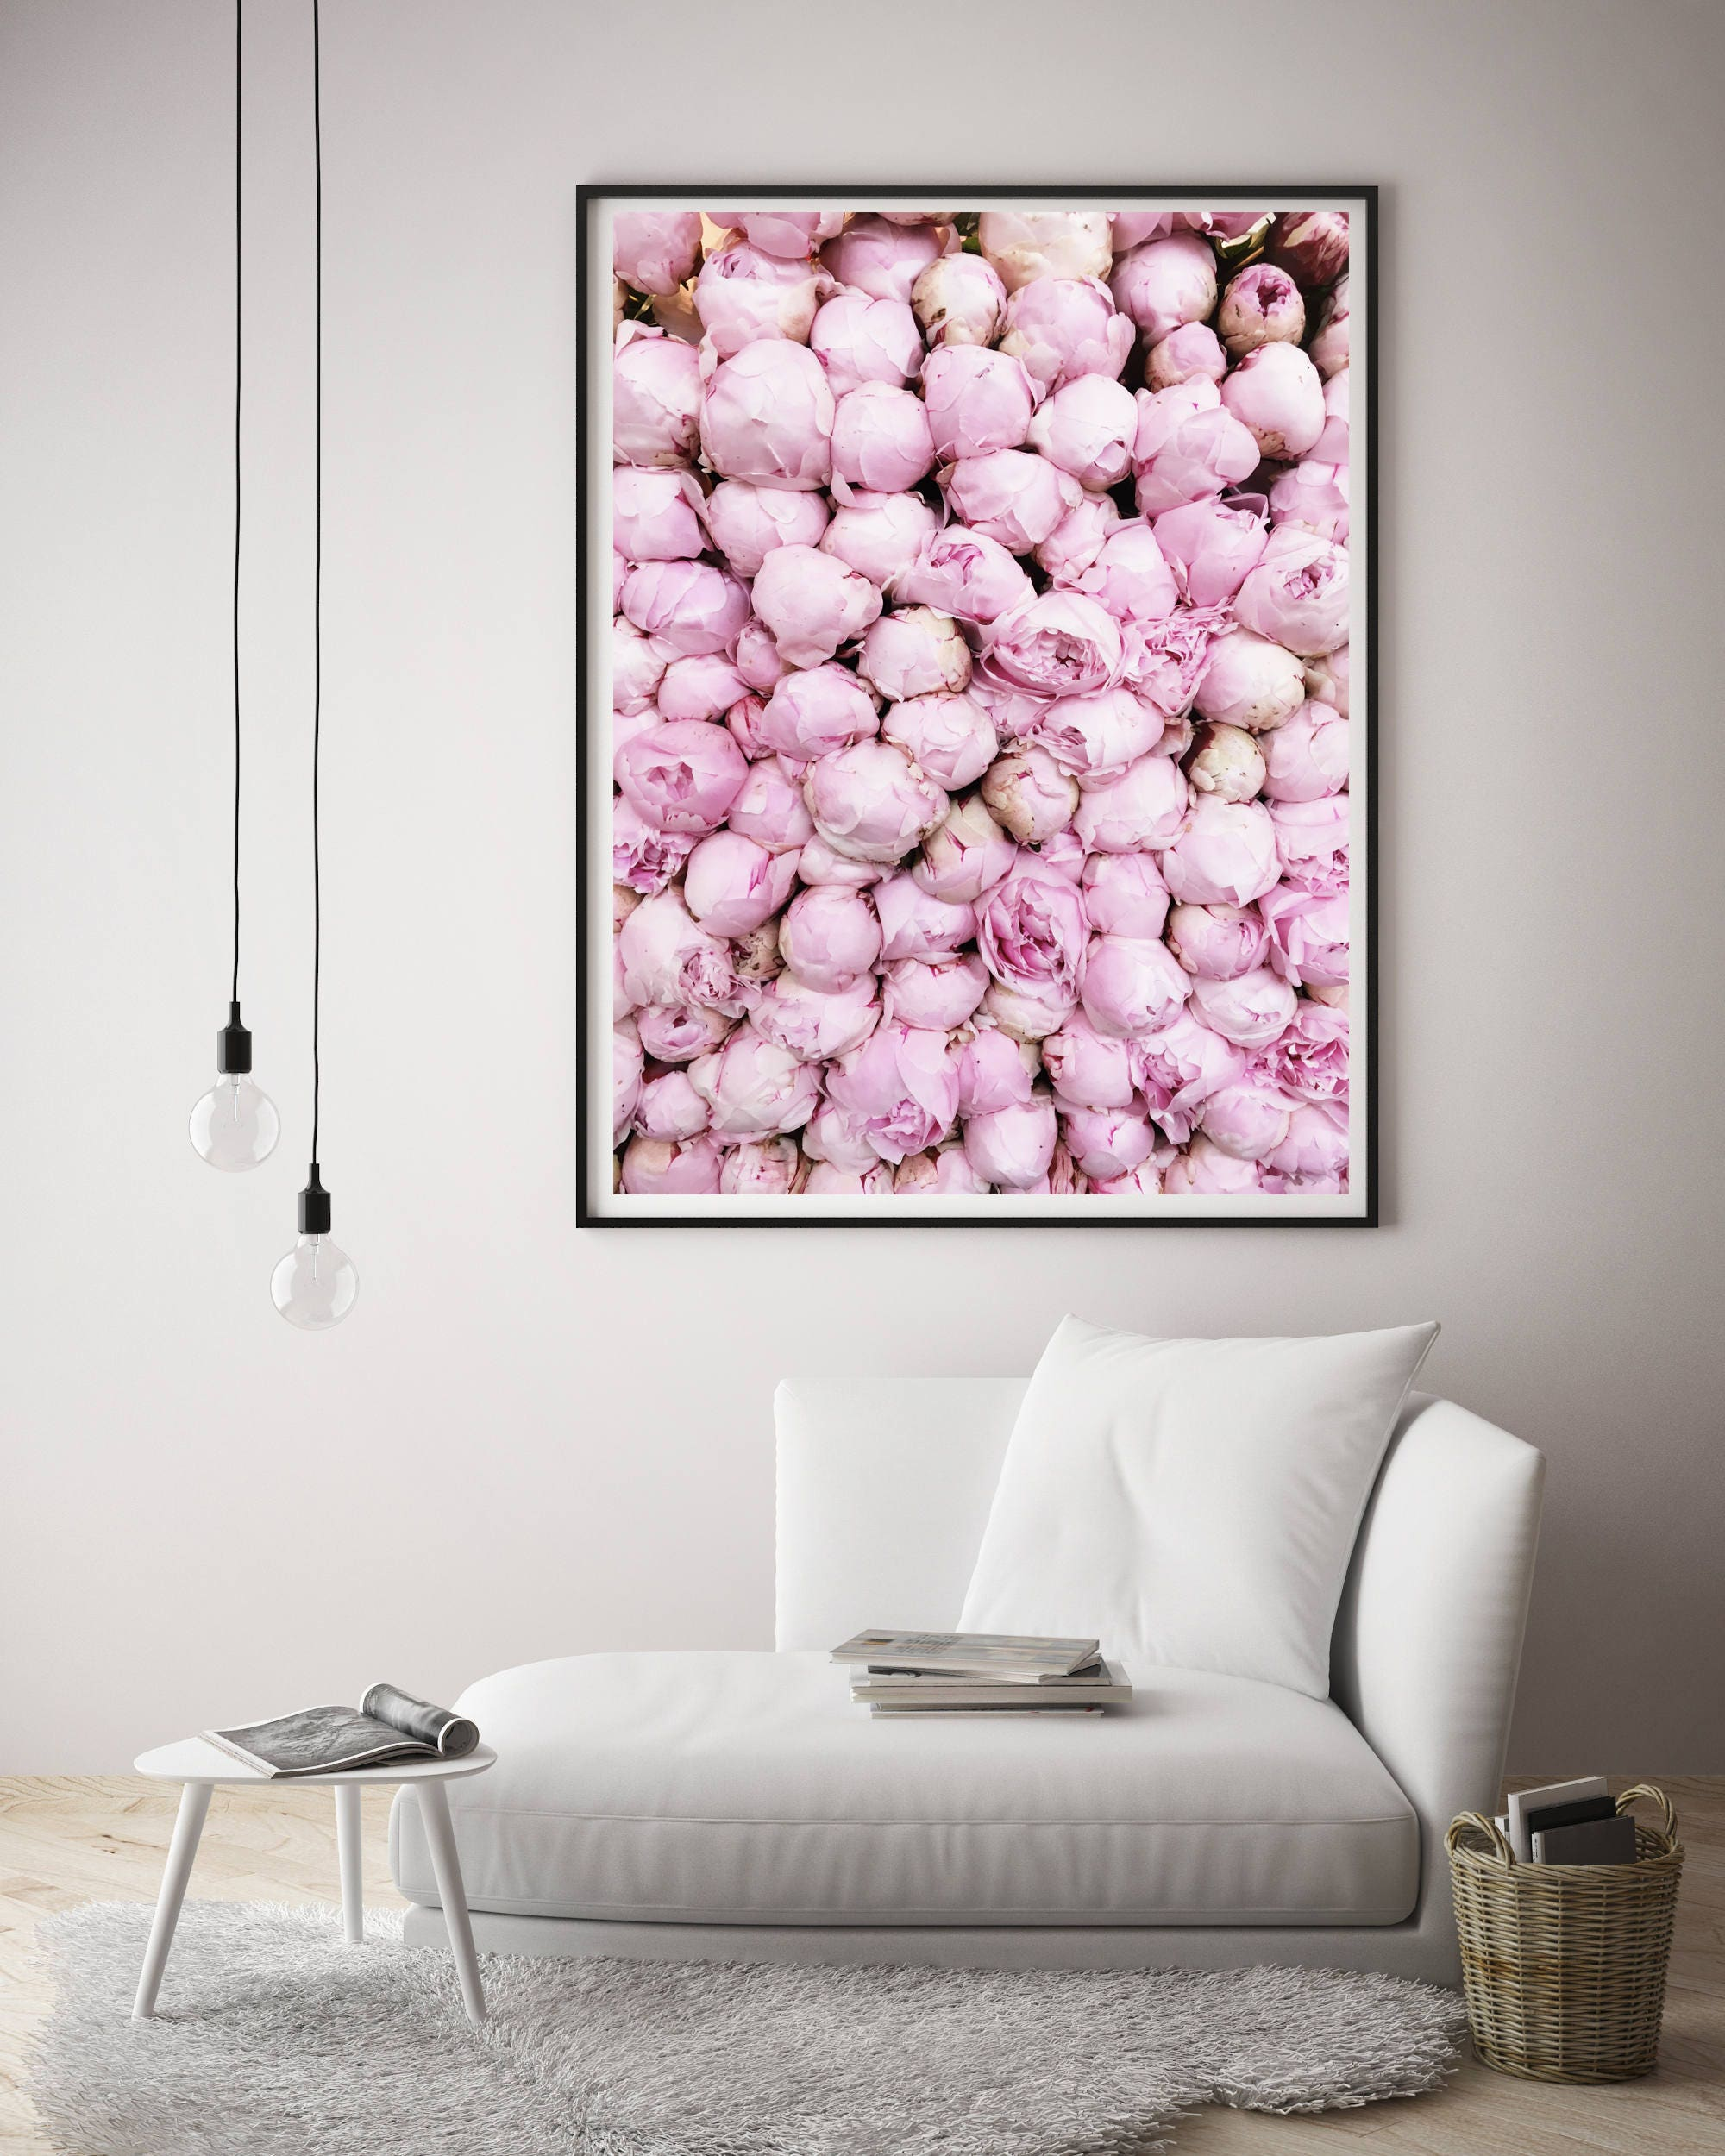 Pink Peony Photo, Peony Art Print, Paris Decor Bedroom, Peony Wall Art,  Paris Wall Decor, Cafe Art Decor, Large Wall Art, Paris, France, Art